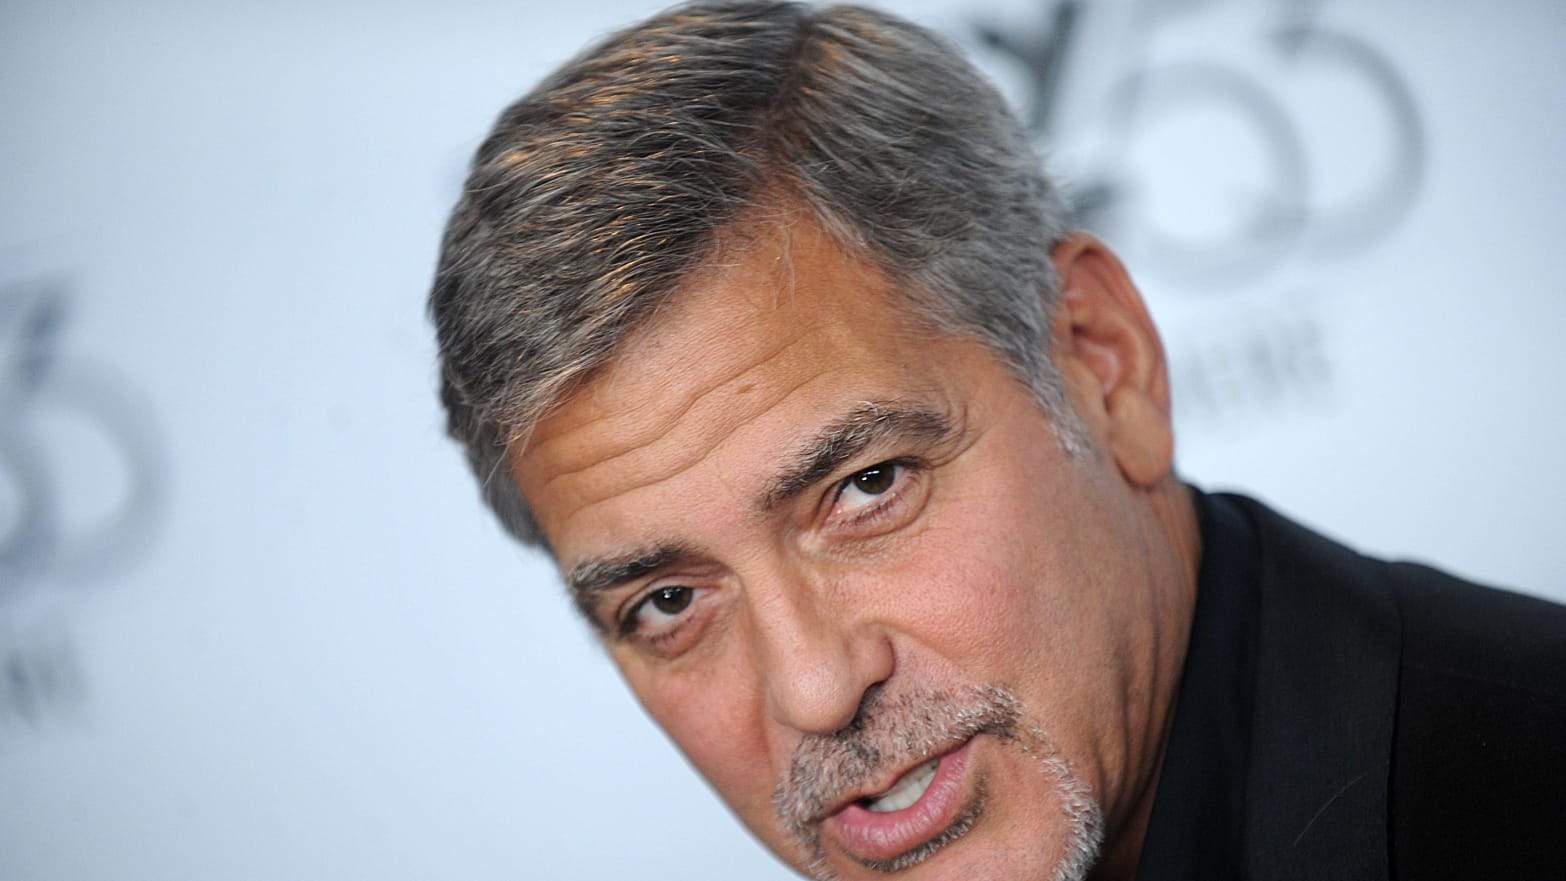 George Clooney, Don't Let Getting Older Stop You From Acting